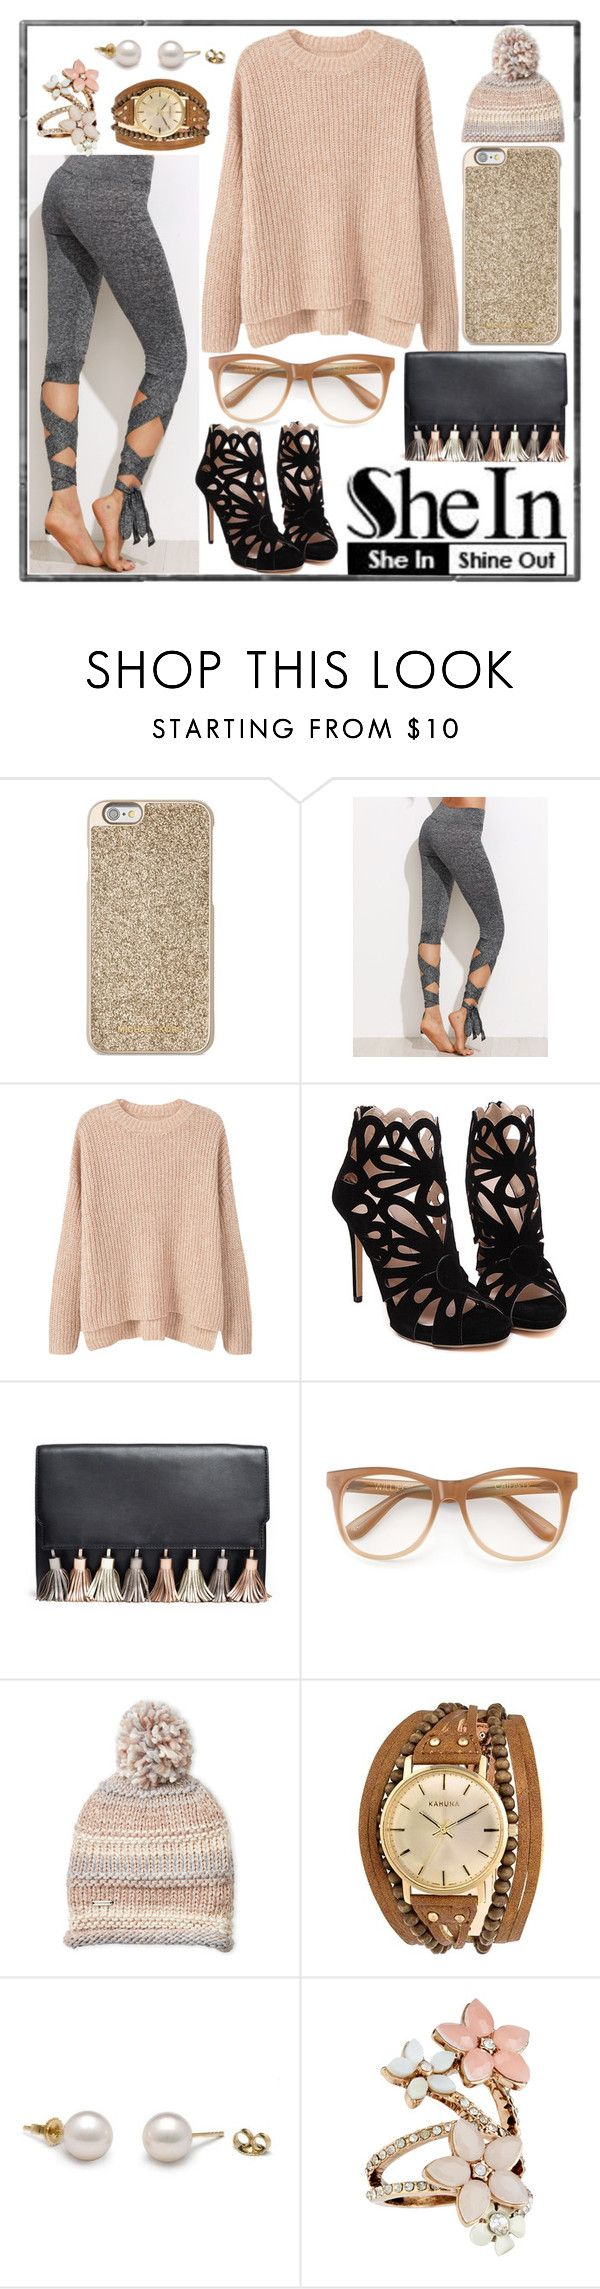 """""""Copped tie knit leggings"""" by covergirlchic ❤ liked on Polyvore featuring Michael Kors, MANGO, Rebecca Minkoff, Wildfox, Steve Madden, Kahuna and Accessorize"""